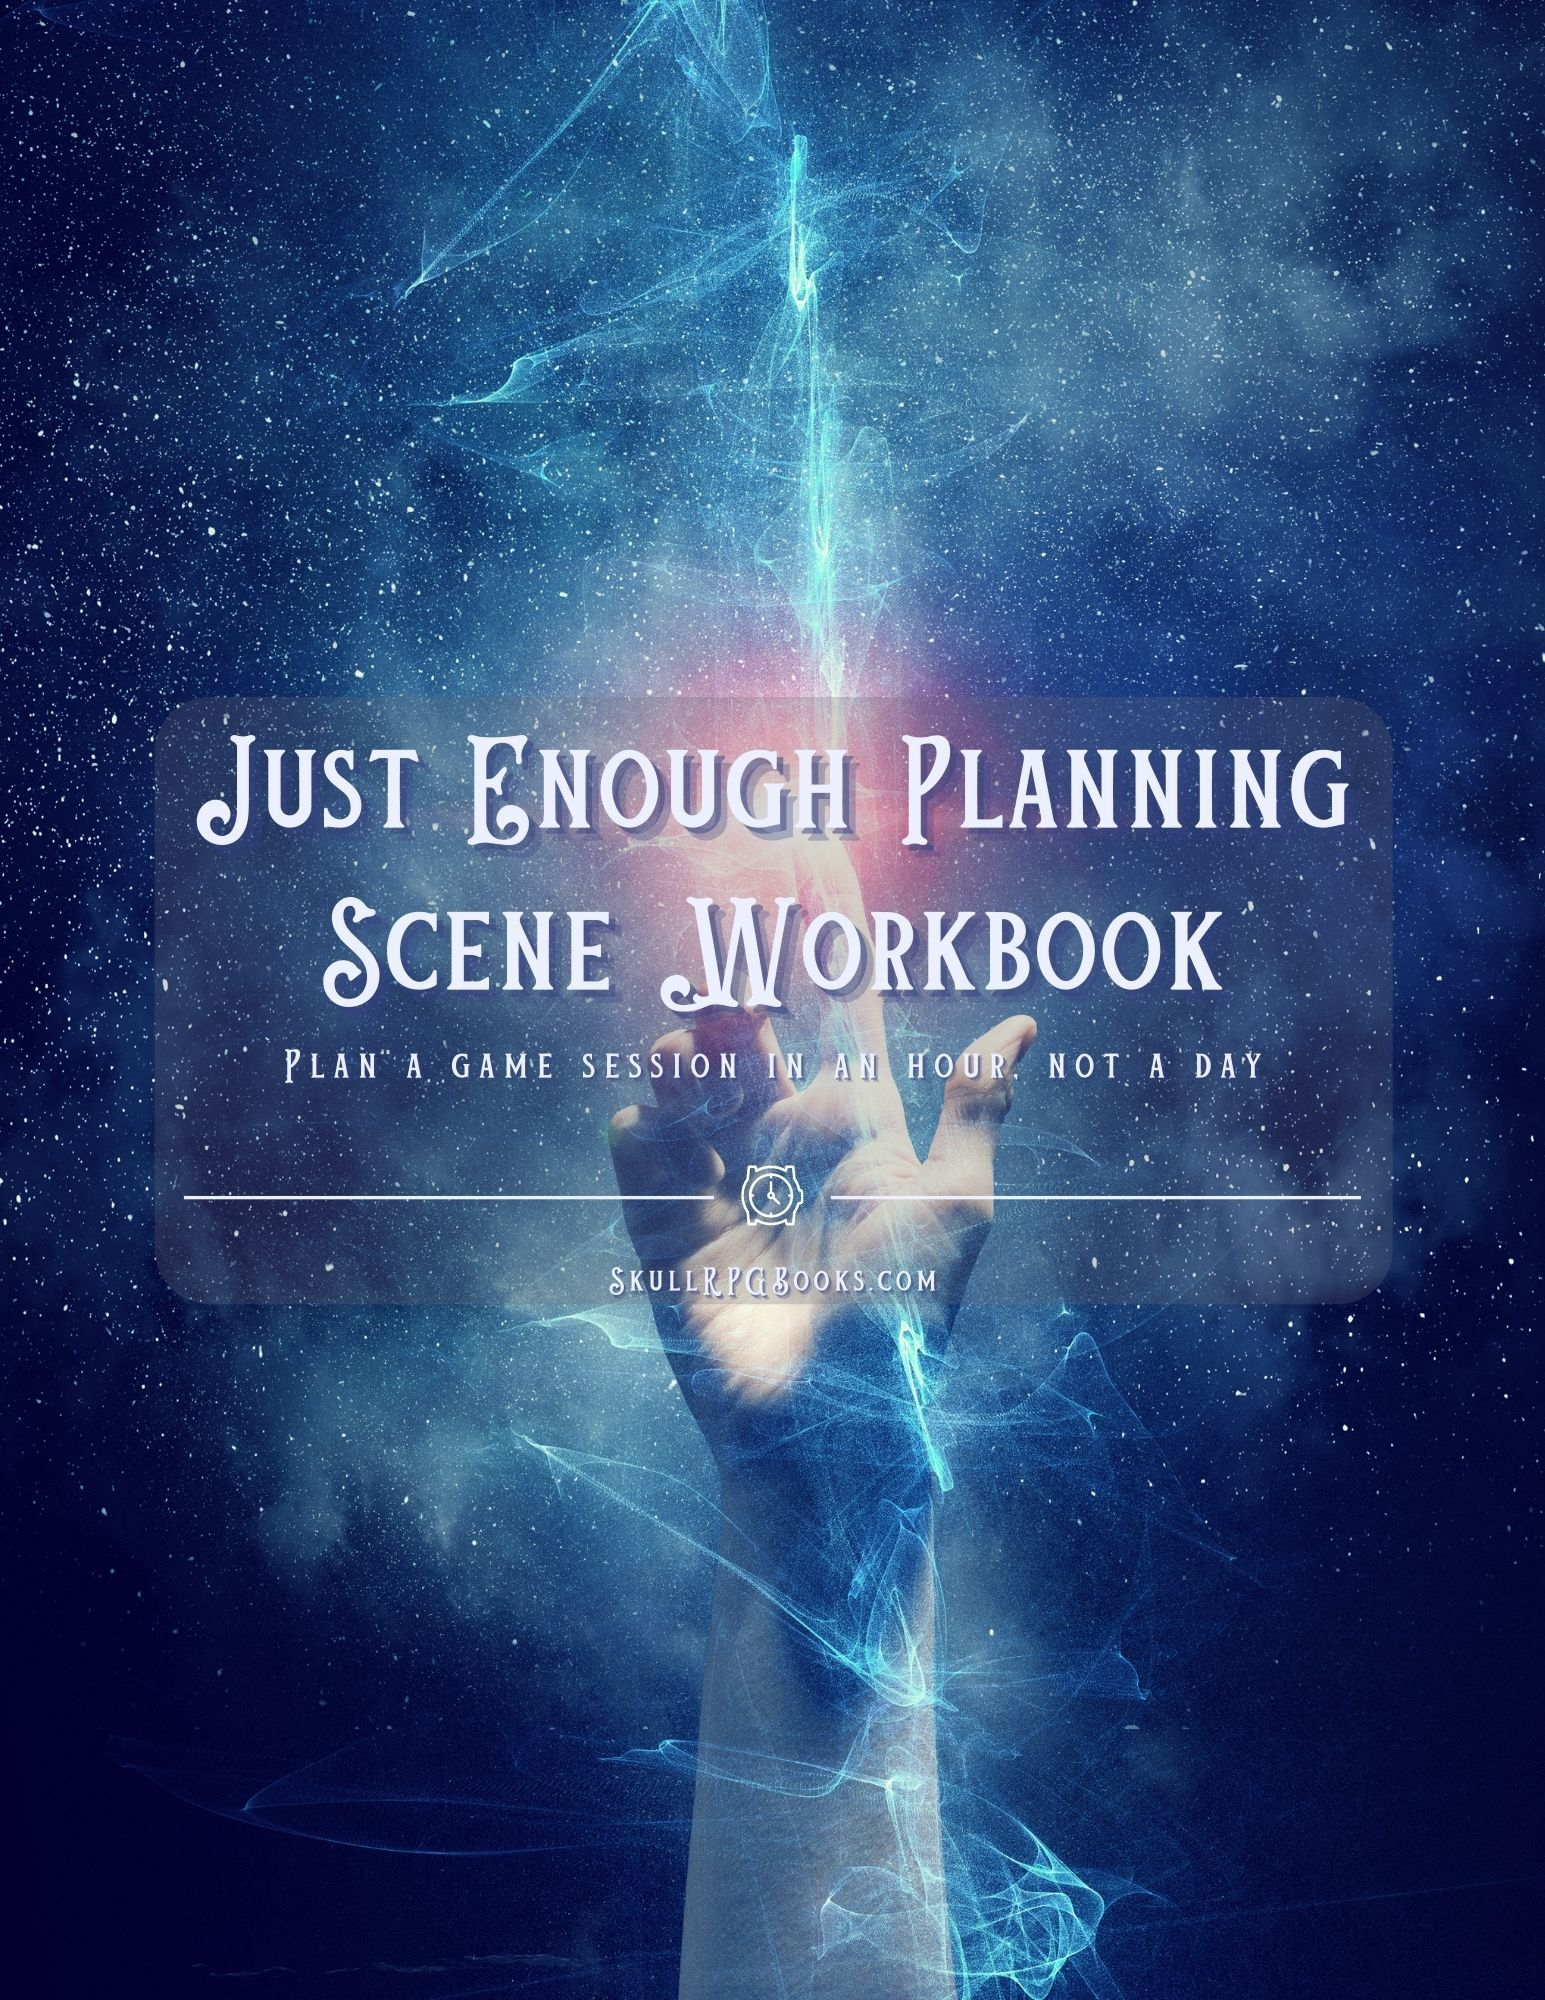 Just Enough Planning Scene Workbook